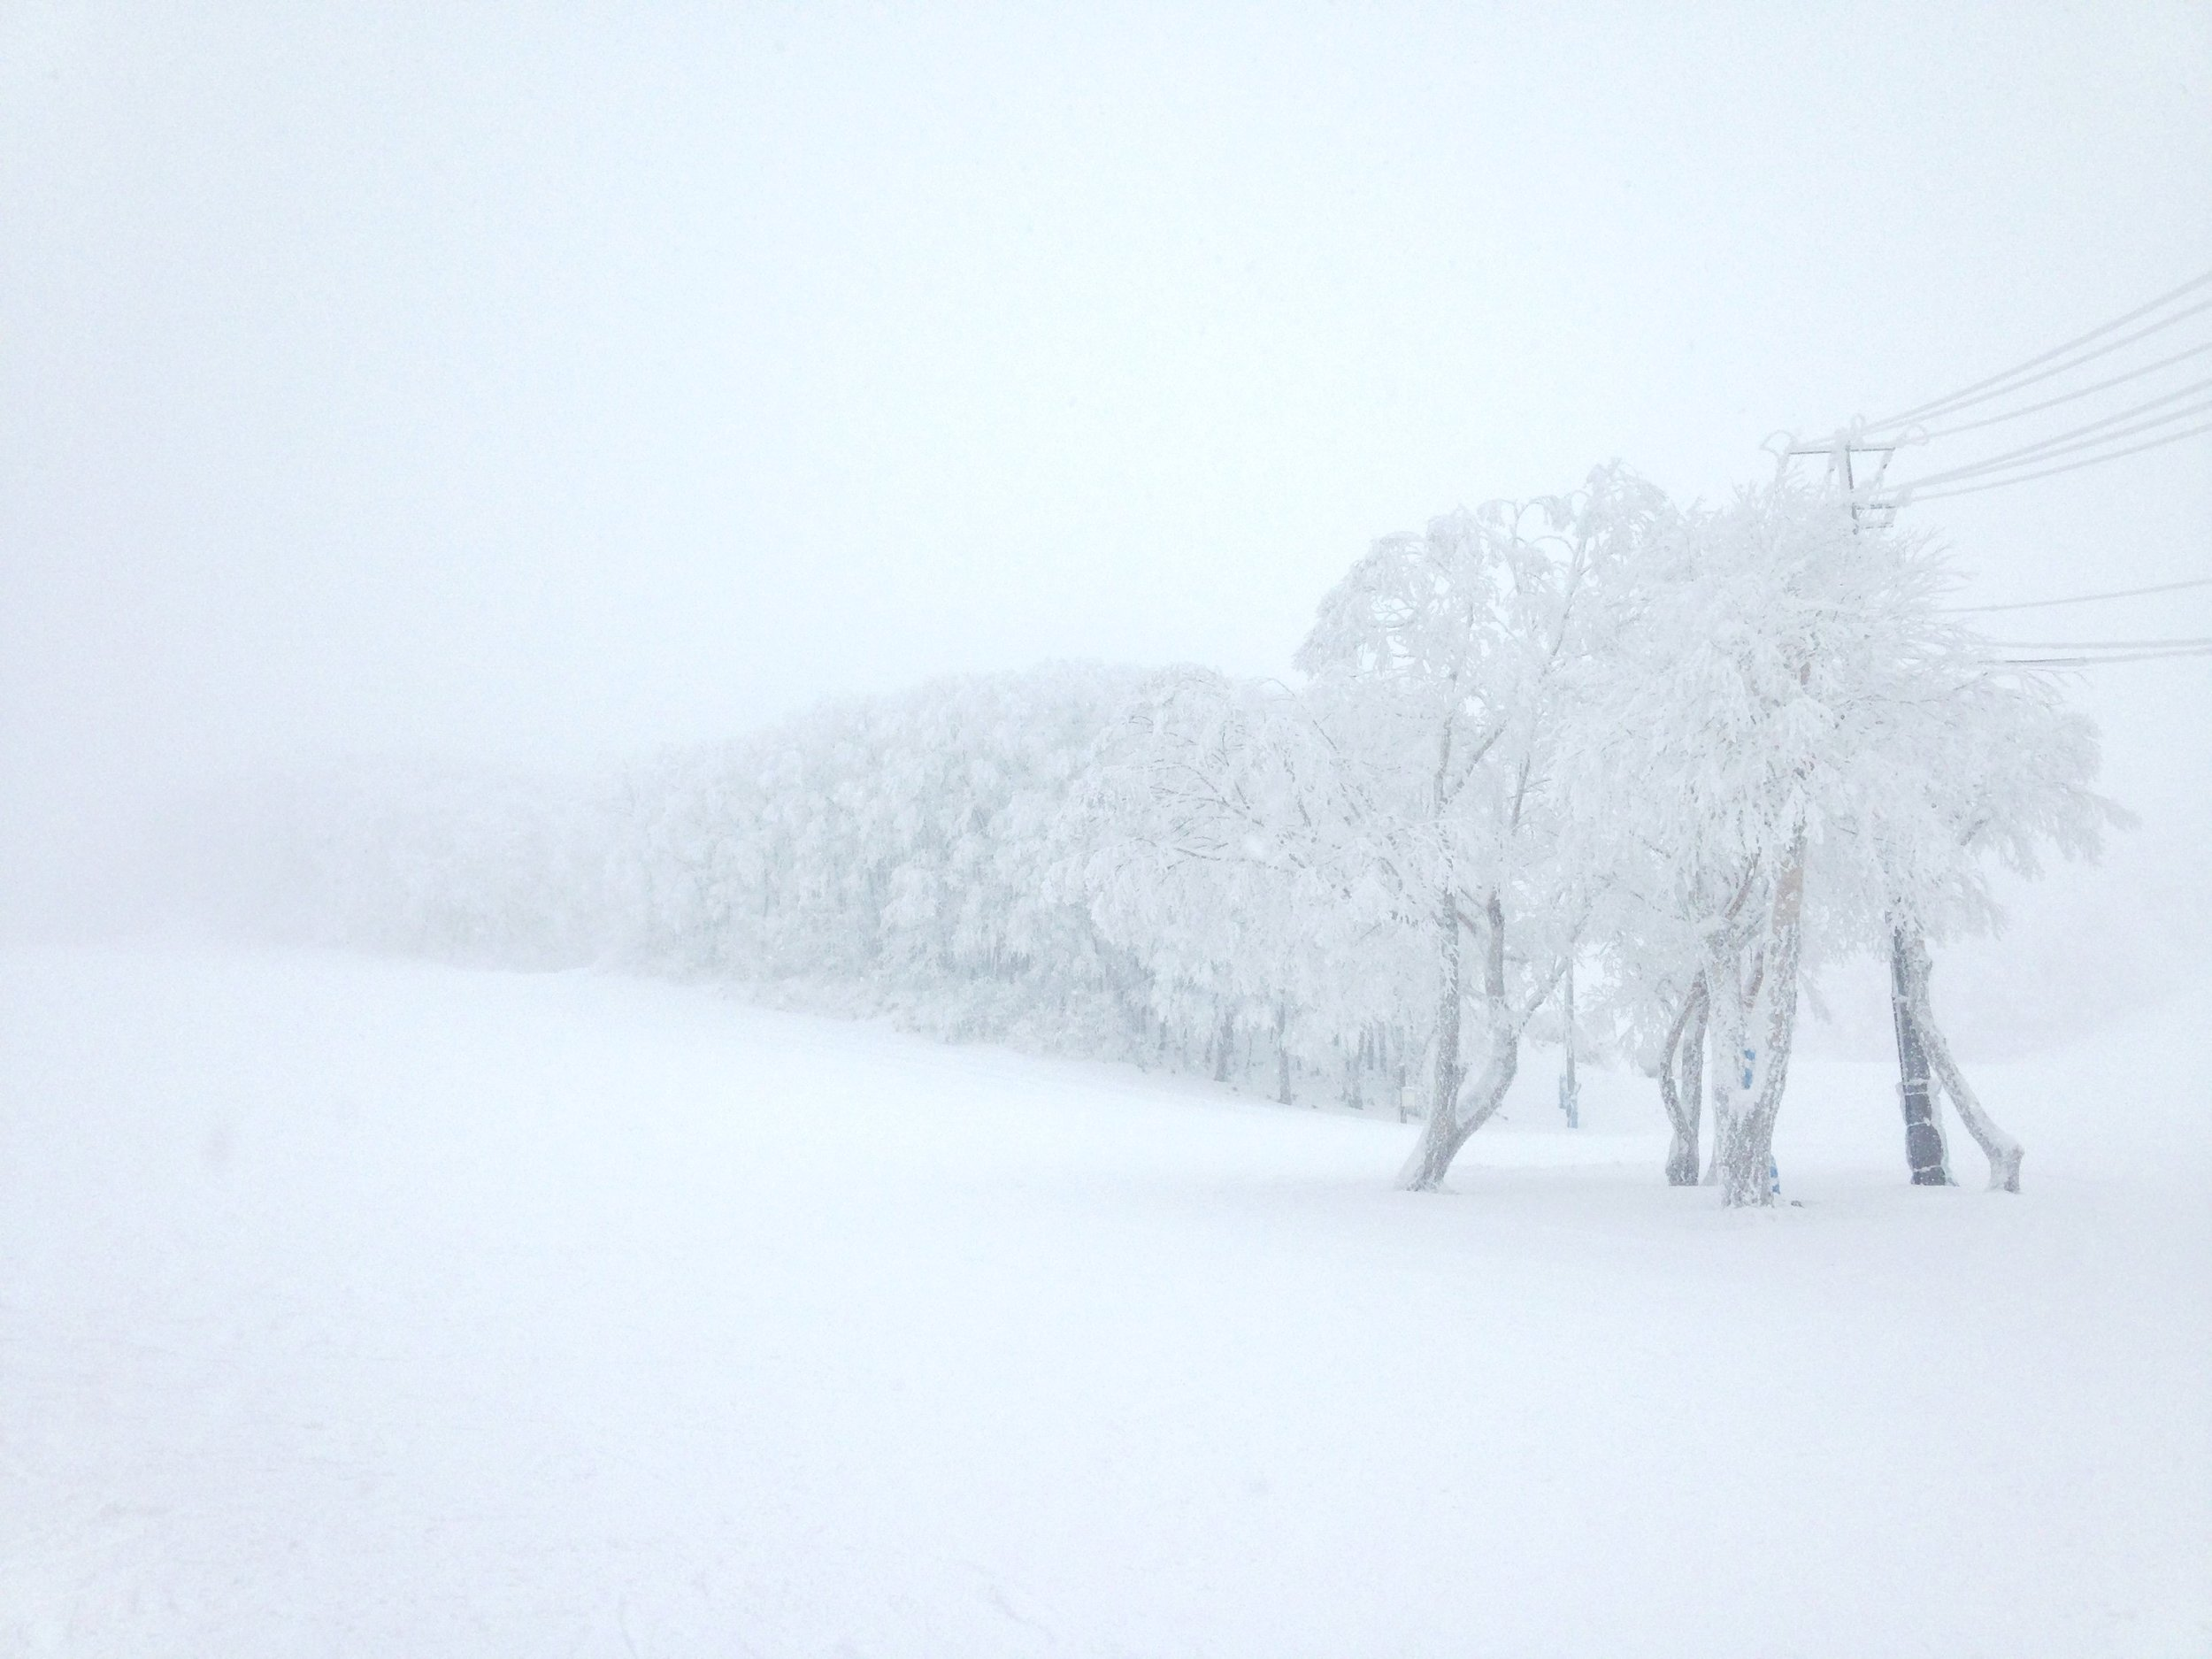 """One of those days when all color is drained from nature, at my """"home"""" ski-場, Zao Onsen, Yamagata."""